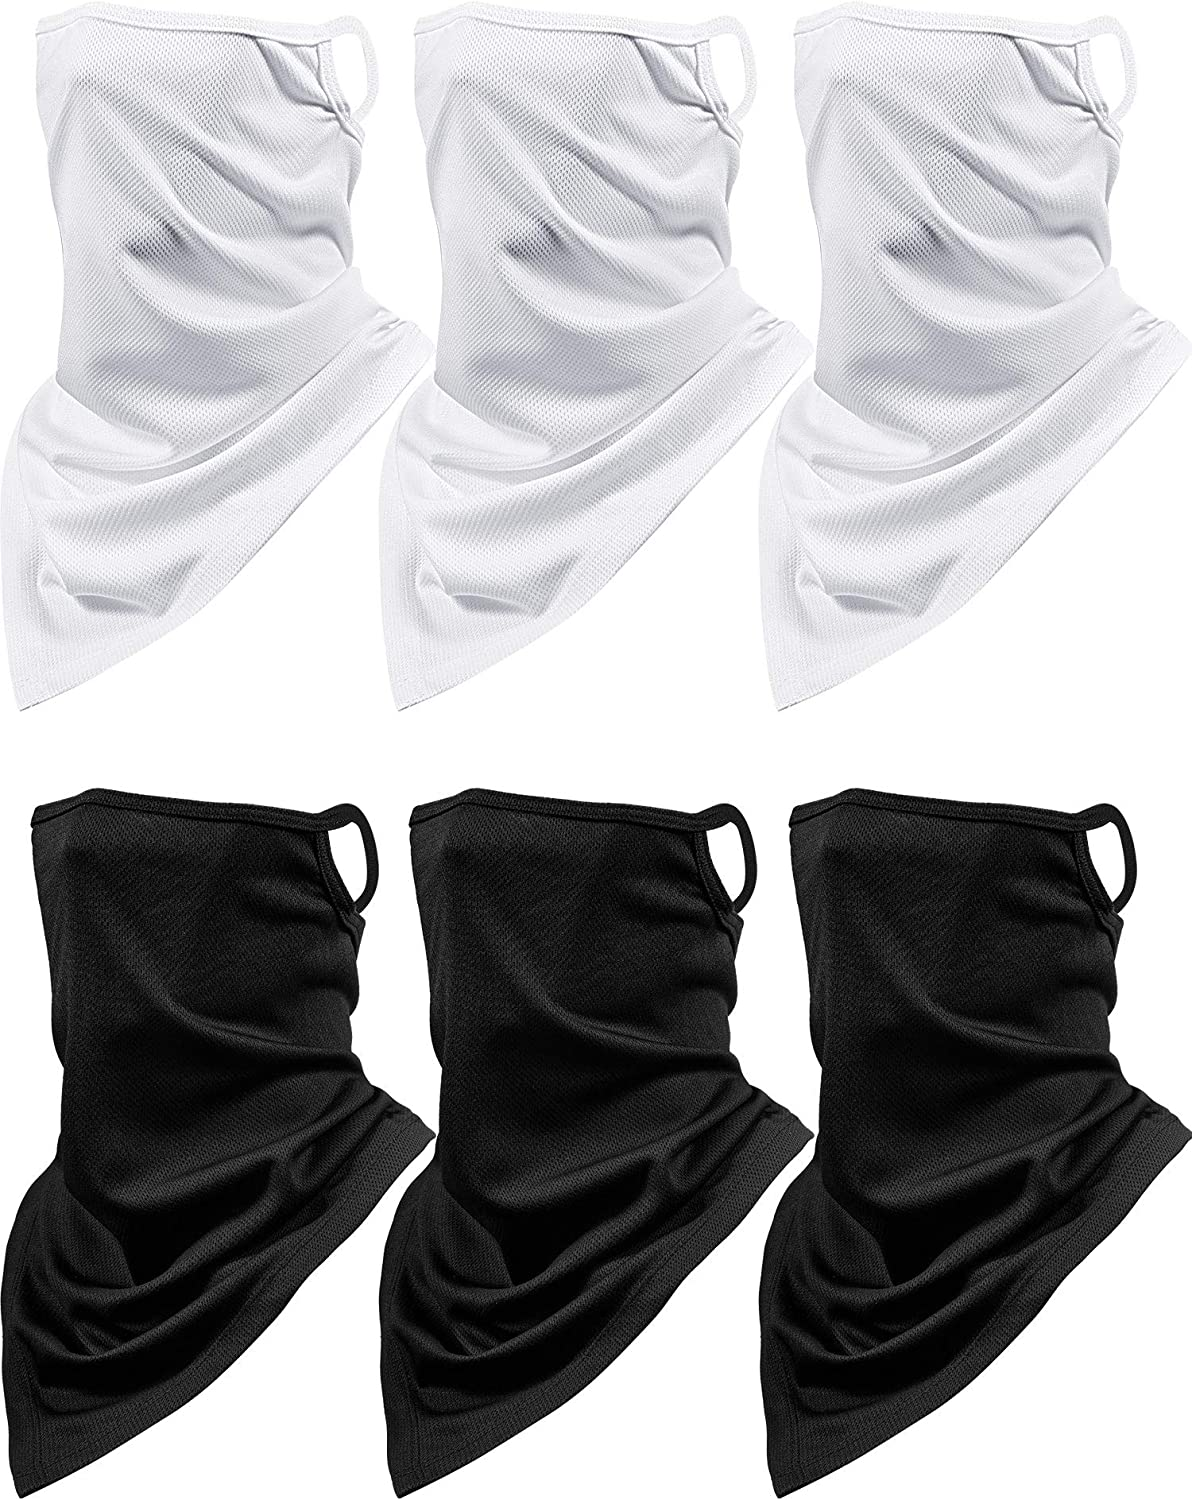 6 Pieces Summer Face Cover Neck Gaiter UV Protection Face Bandana Scarf Unisex Breathable Balaclava with Ear Loop